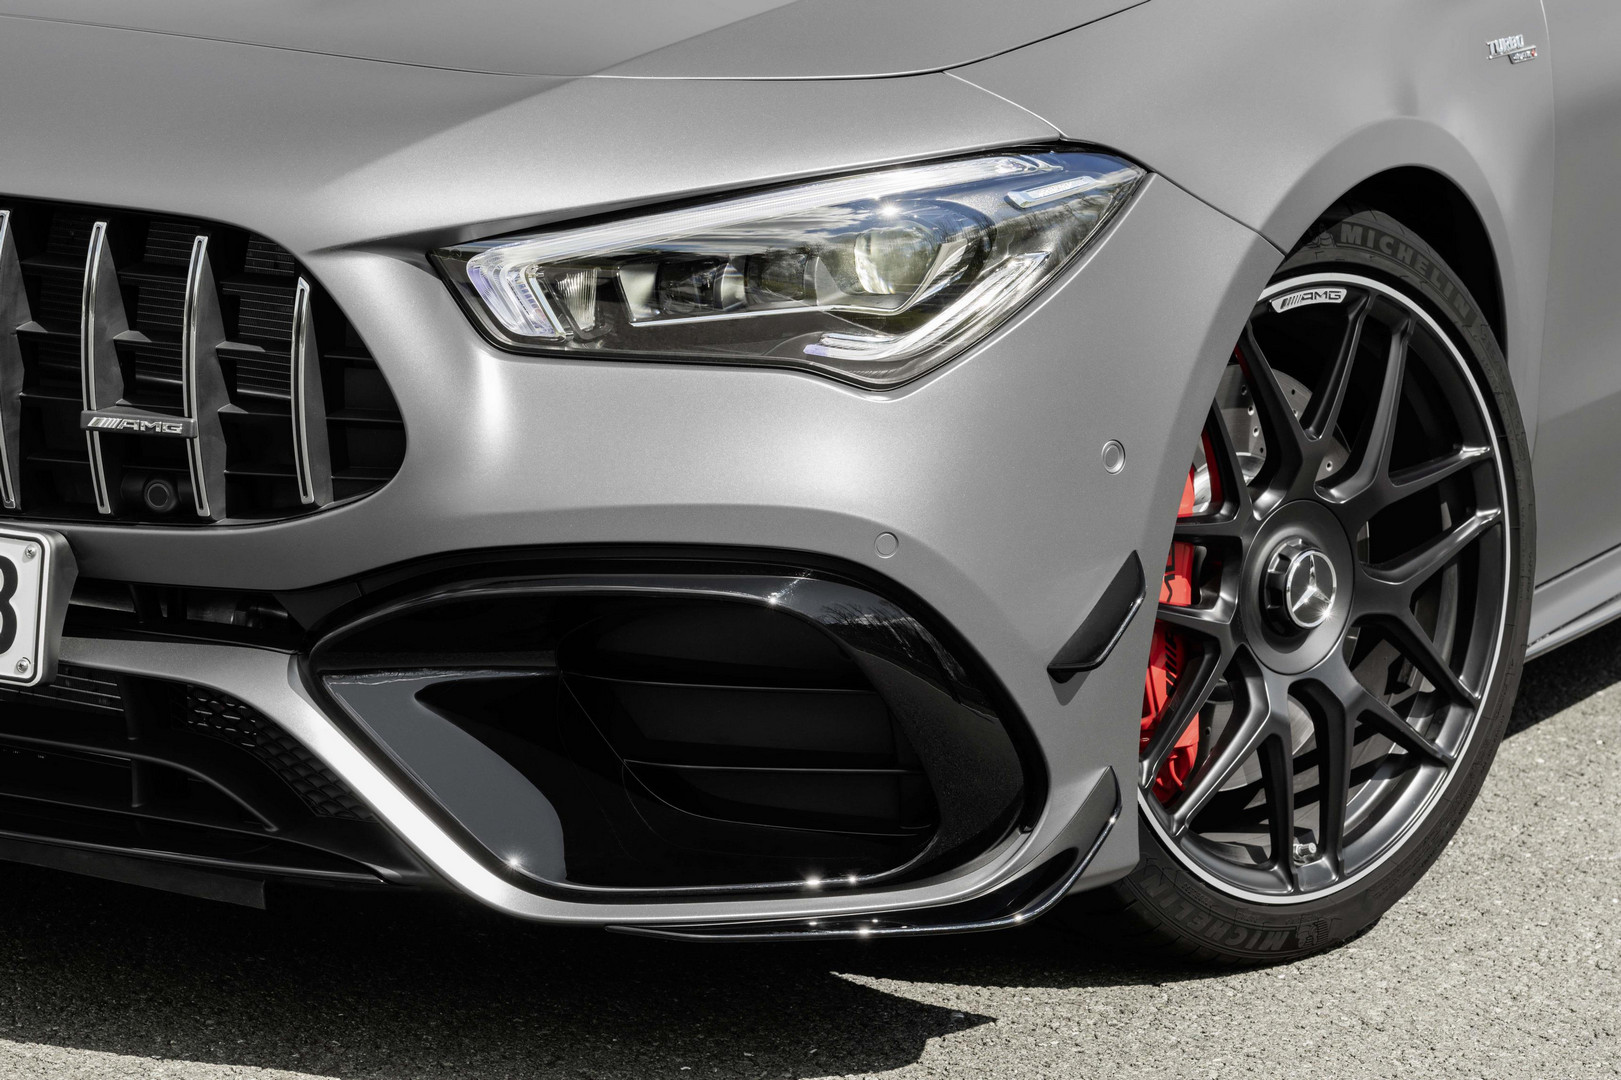 Mercedes-AMG CLA 45 S Shooting Brake Headlight